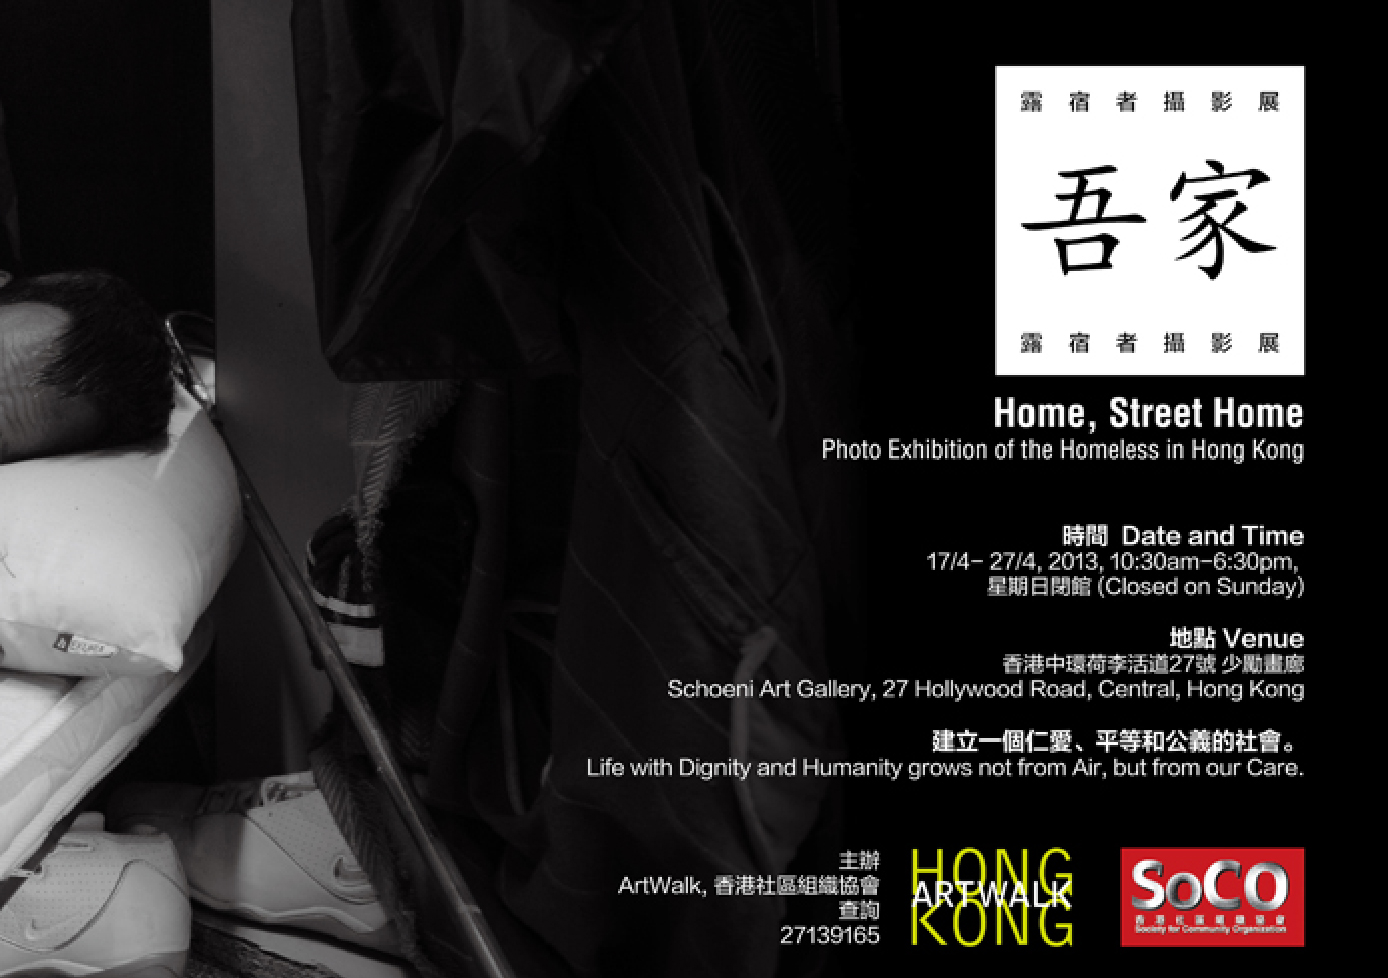 Home, Street Home – Photo Exhibition of the Homeless in Hong Kong